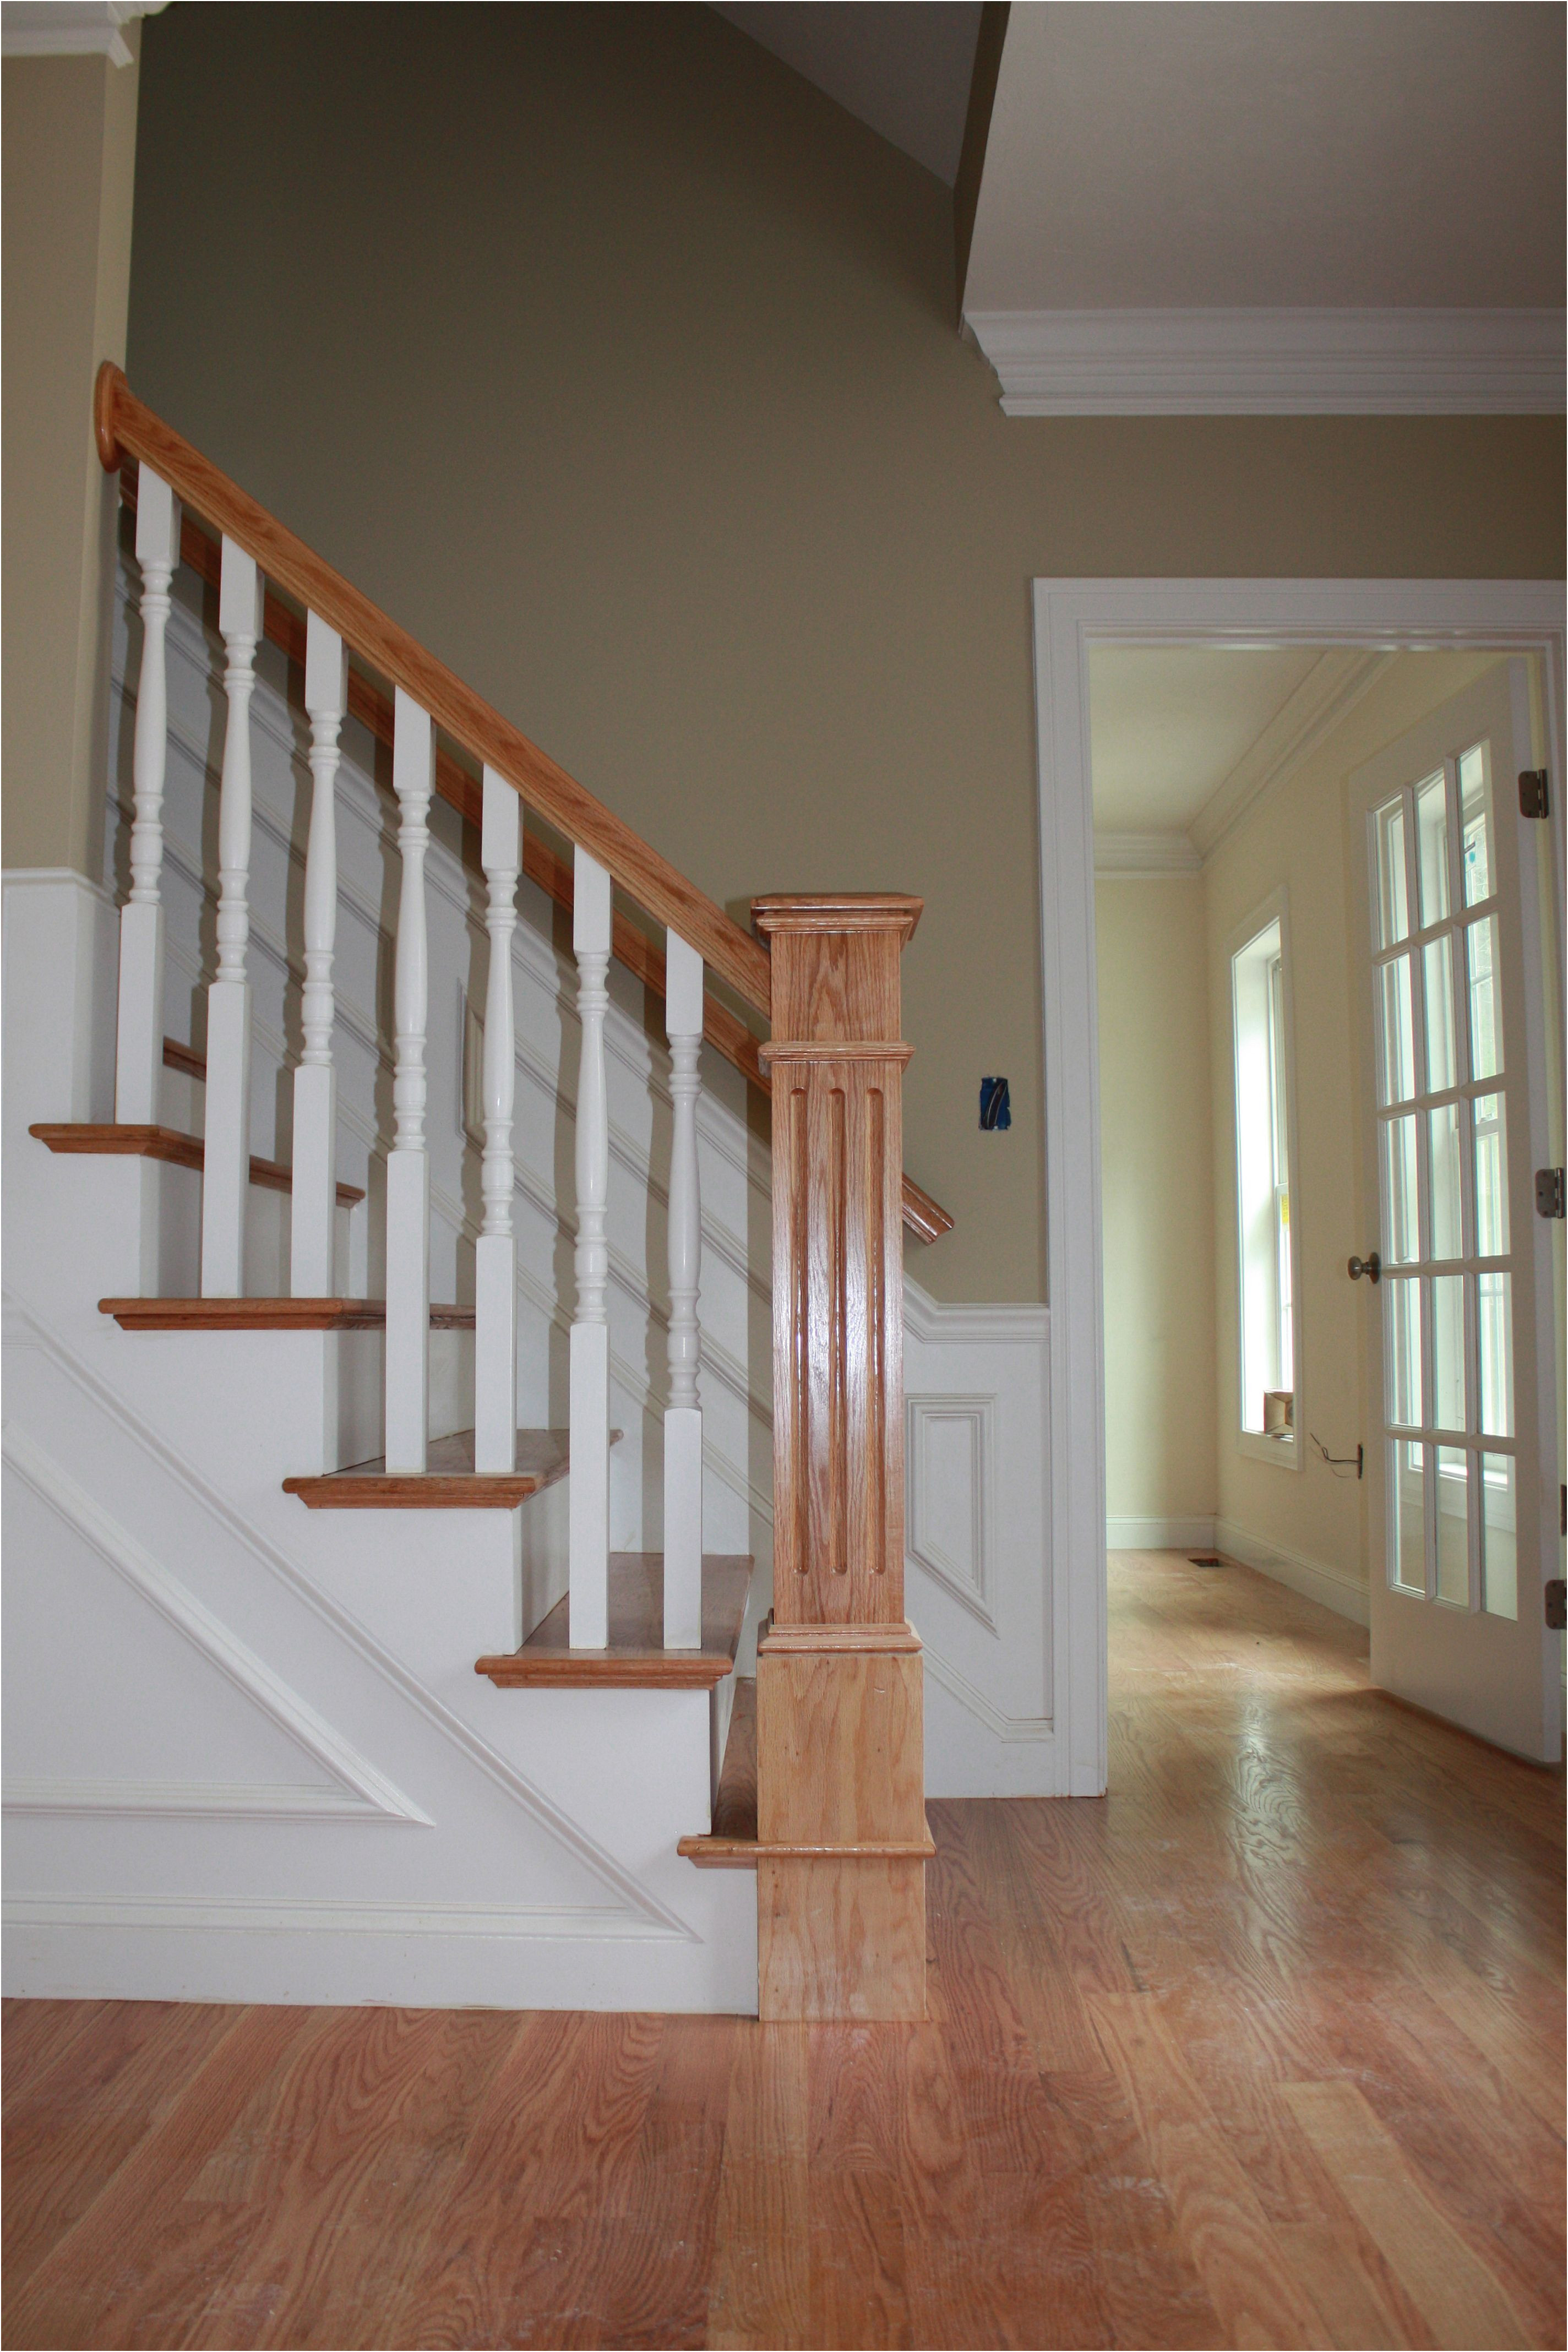 rona hardwood flooring of oak stair treads rona elegant pw t apr12 by display pennywise issuu pertaining to oak stair treads rona beautiful modern staircase with zen posts and stainless steel spindles home